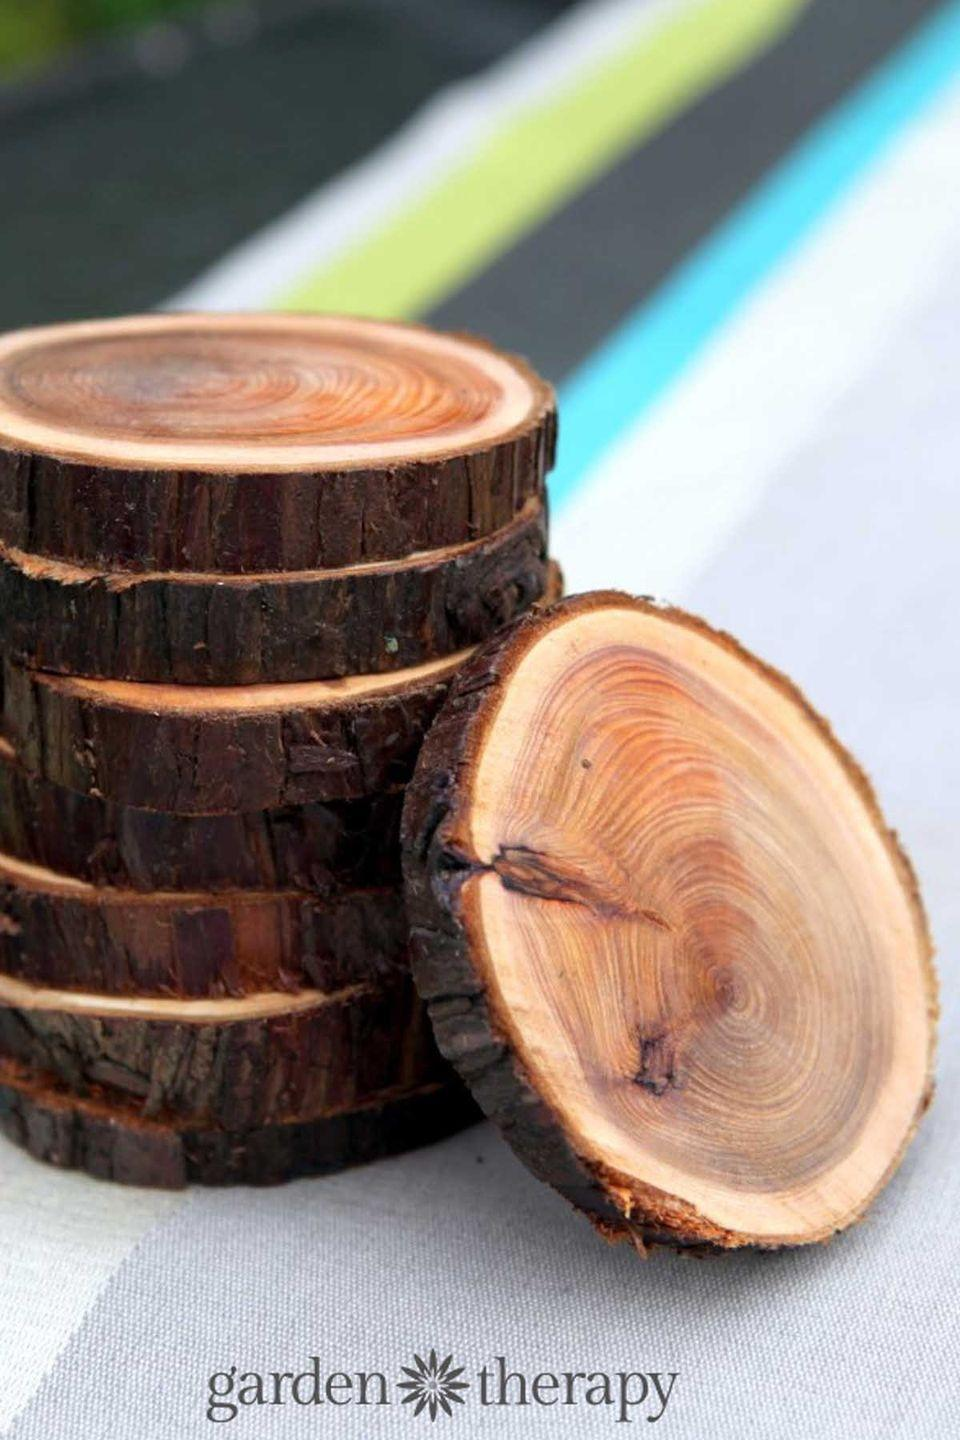 """<p>Bring the outdoors inside with these unique wooden coasters, which would make the perfect addition to his man cave. </p><p><strong>Get the tutorial at <a href=""""https://gardentherapy.ca/natural-branch-coasters/"""" rel=""""nofollow noopener"""" target=""""_blank"""" data-ylk=""""slk:Garden Therapy"""" class=""""link rapid-noclick-resp"""">Garden Therapy</a>. </strong></p>"""